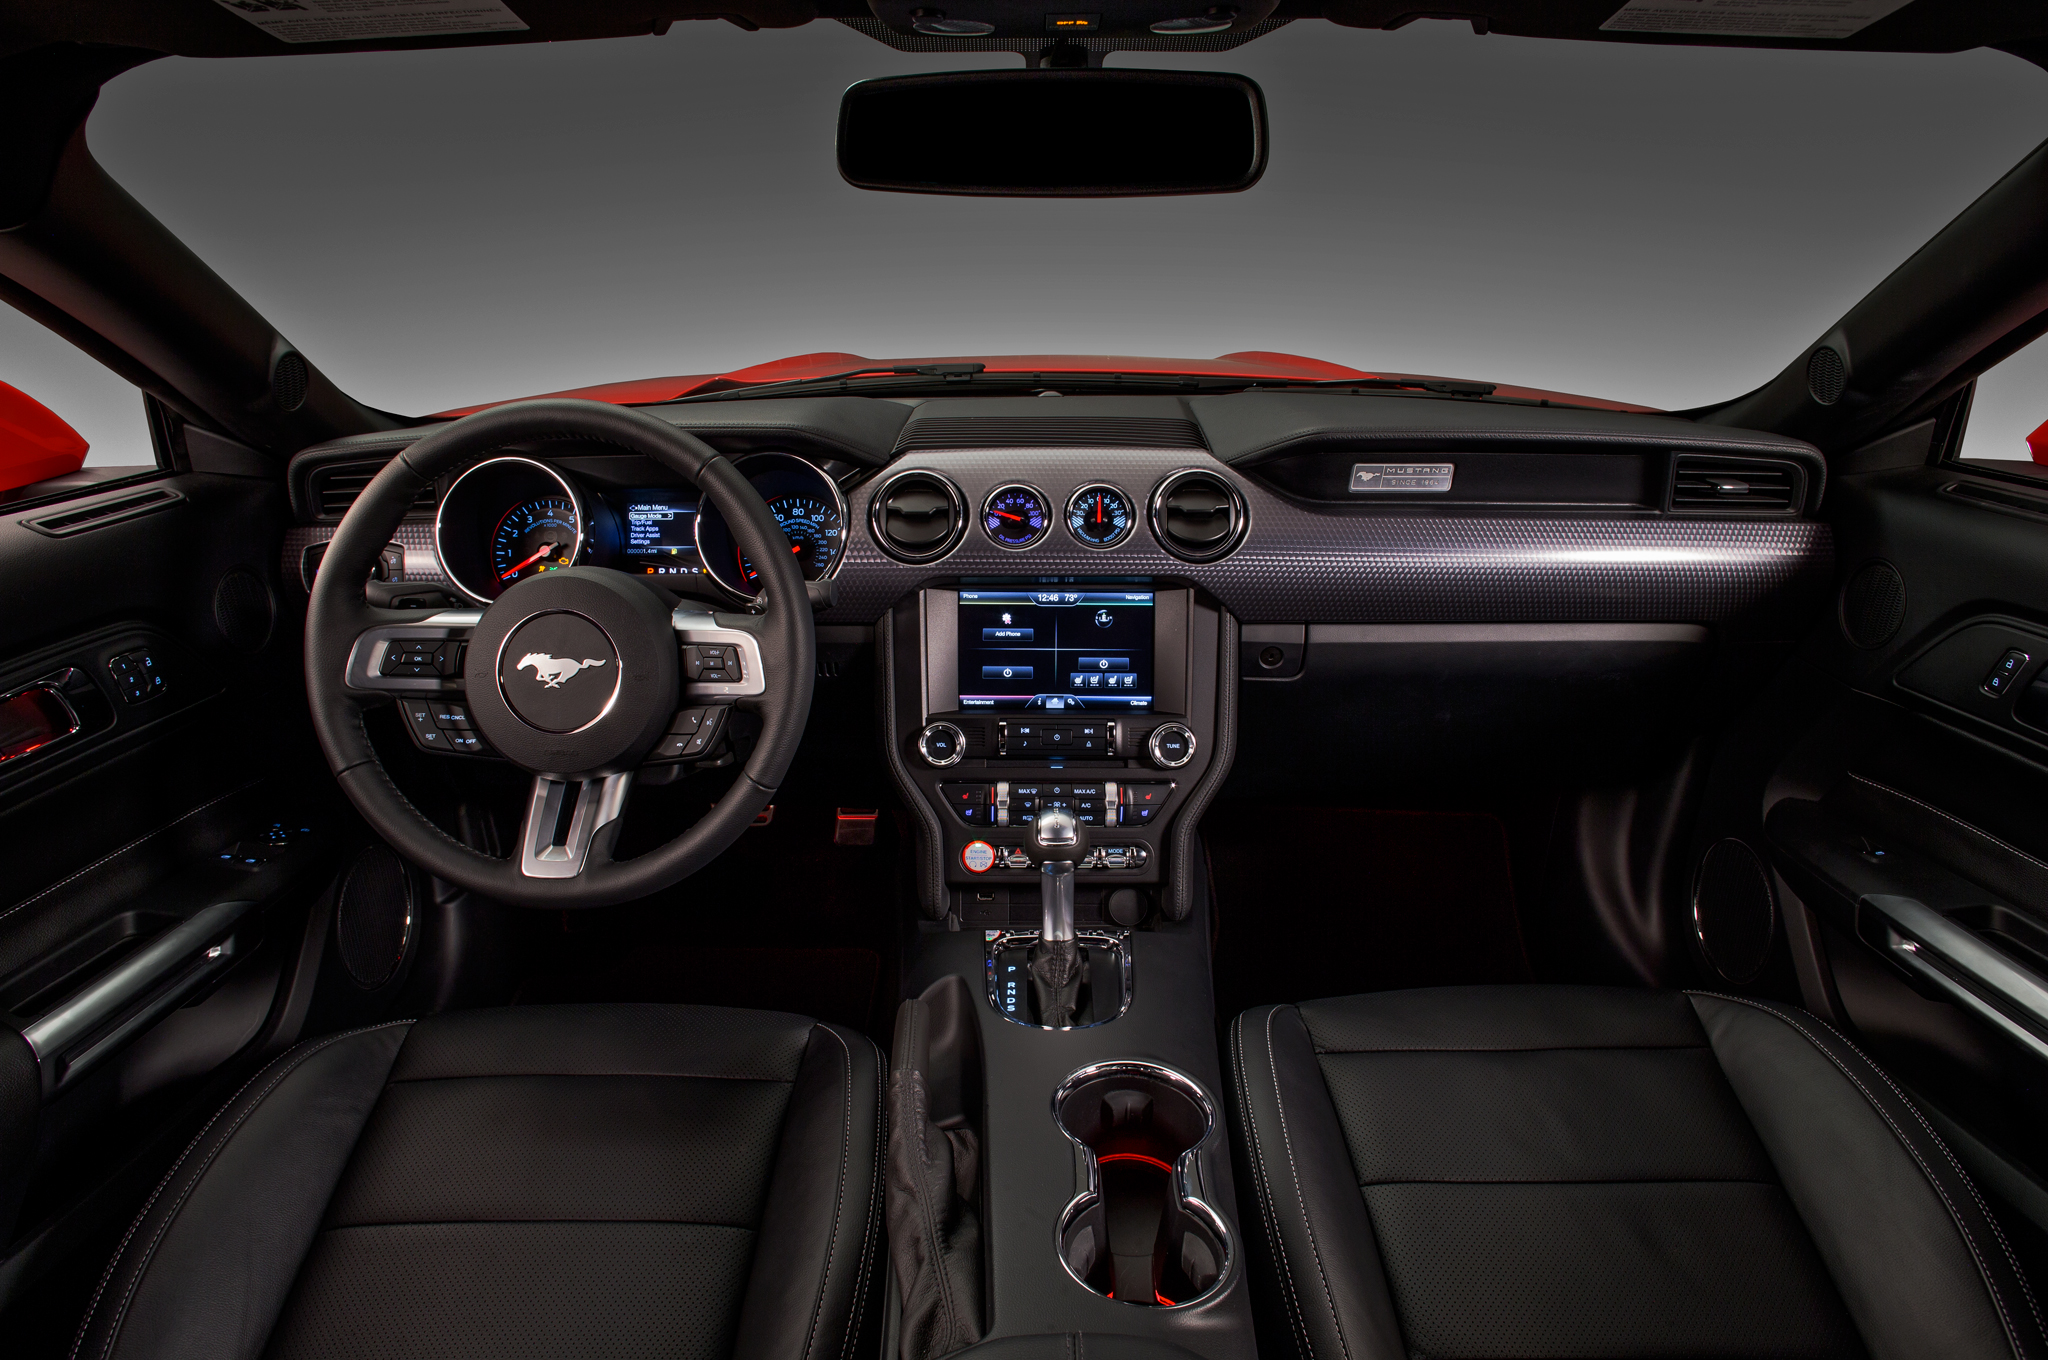 The Making of the 2015 Ford Mustang - Interior Design